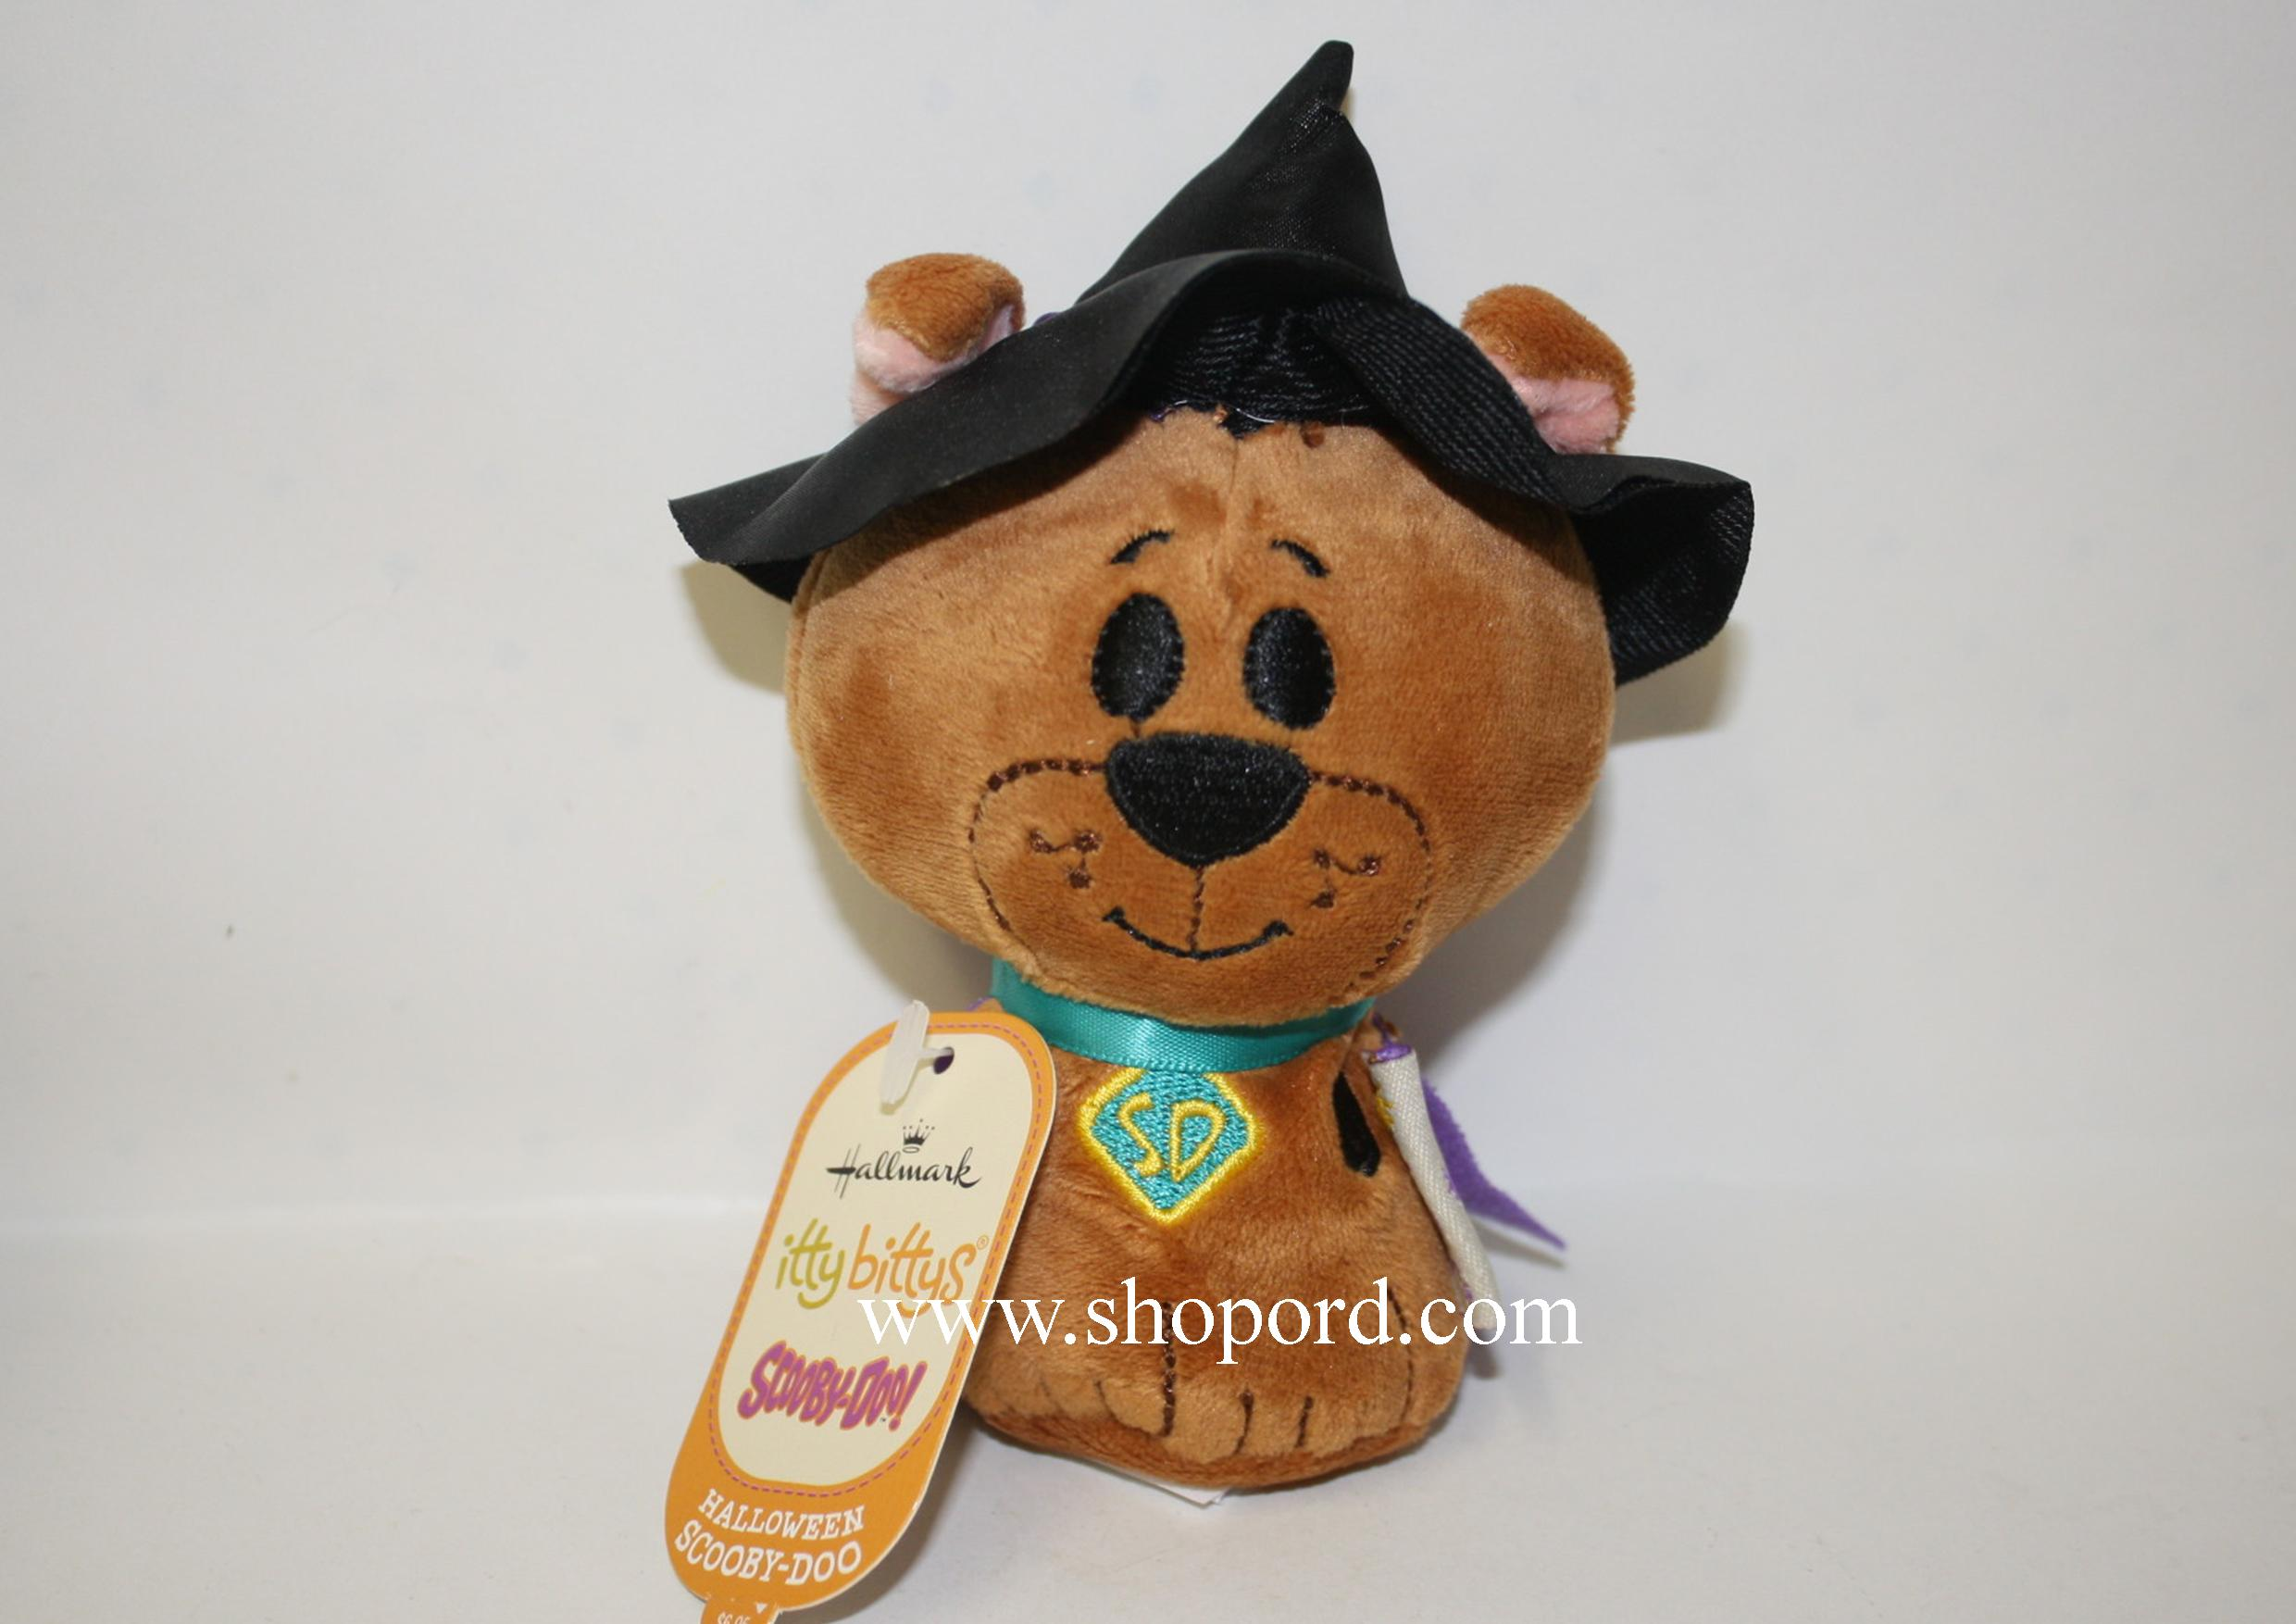 Hallmark Itty Bitty Halloween Scooby Doo Plush KID3376